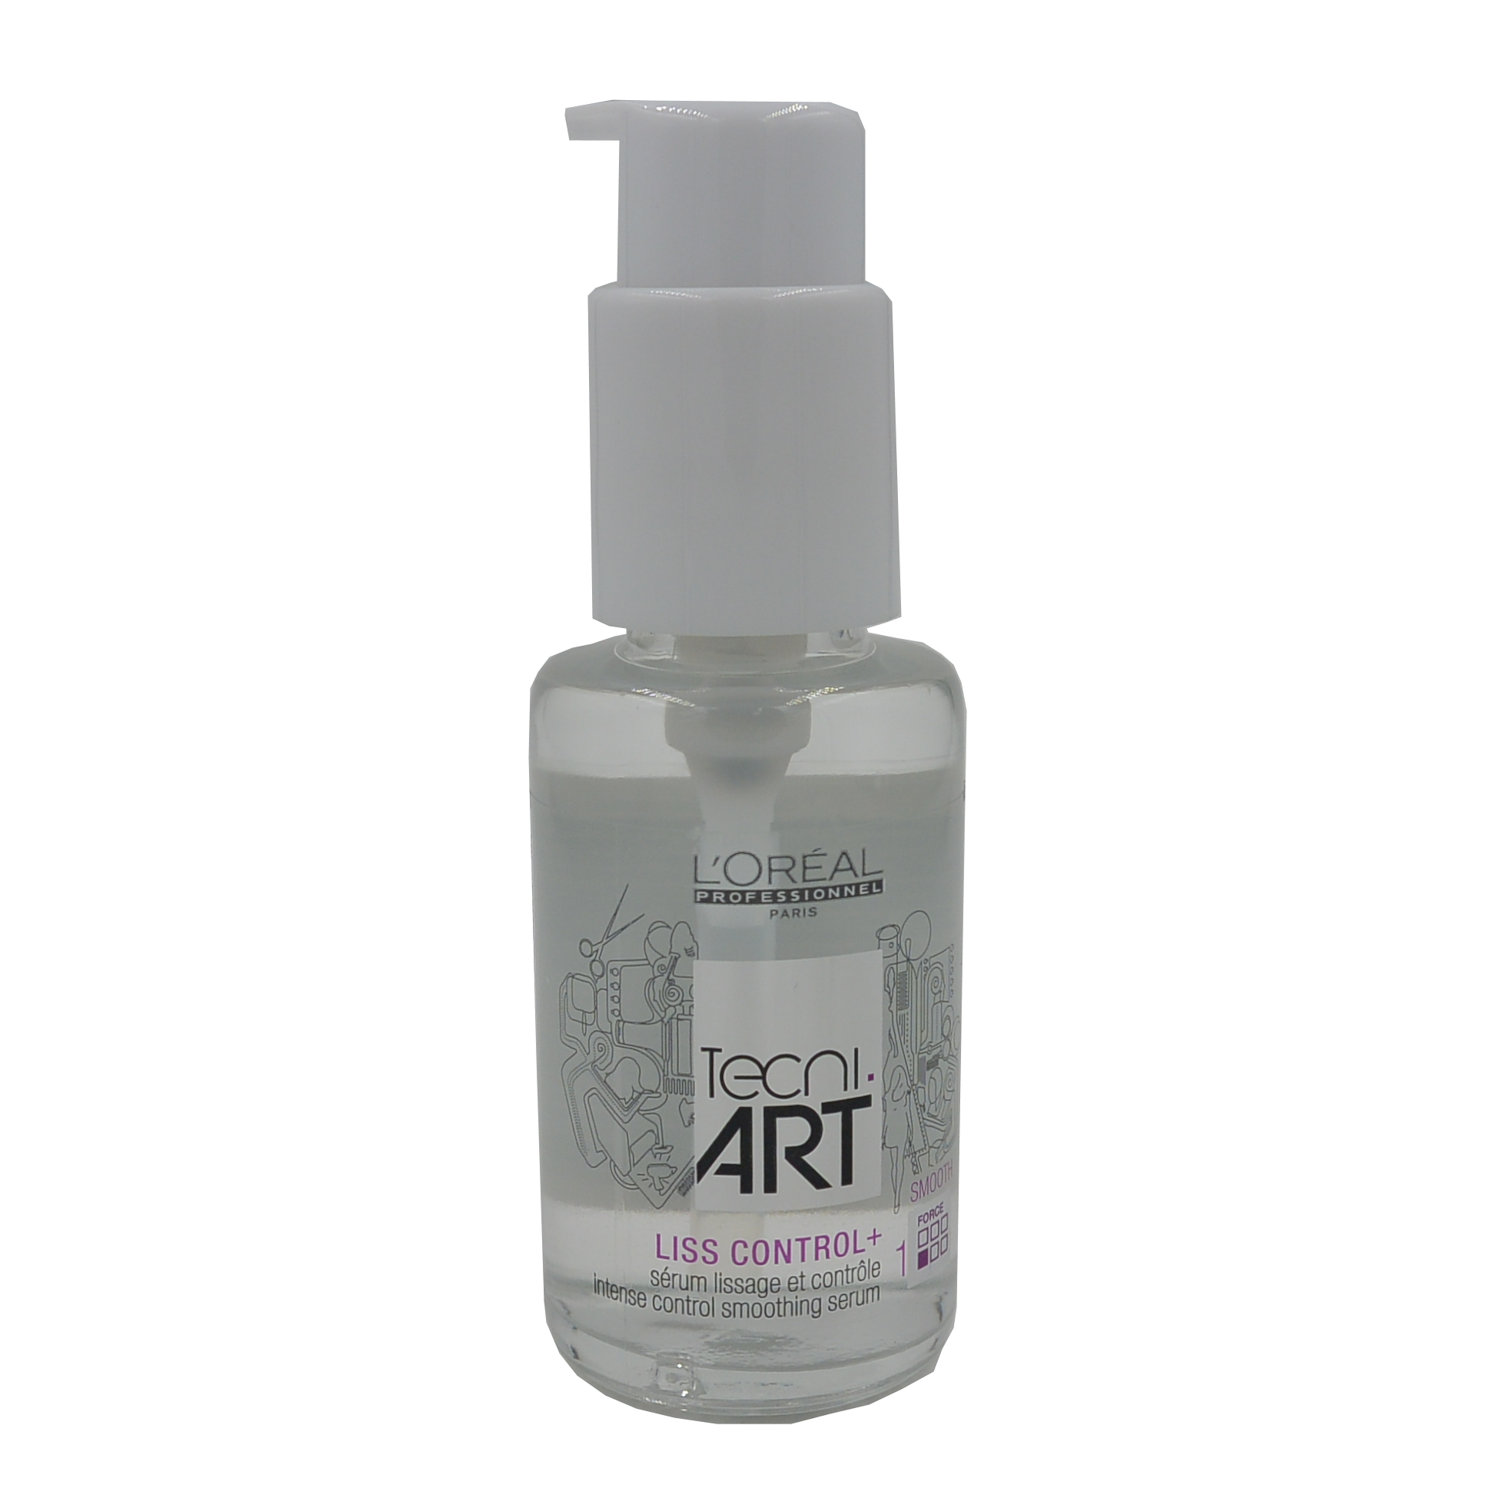 Loreal Professionnel Tangent.Art Liss Control Serum + - Intensive Serum for smoothing hair 50ml